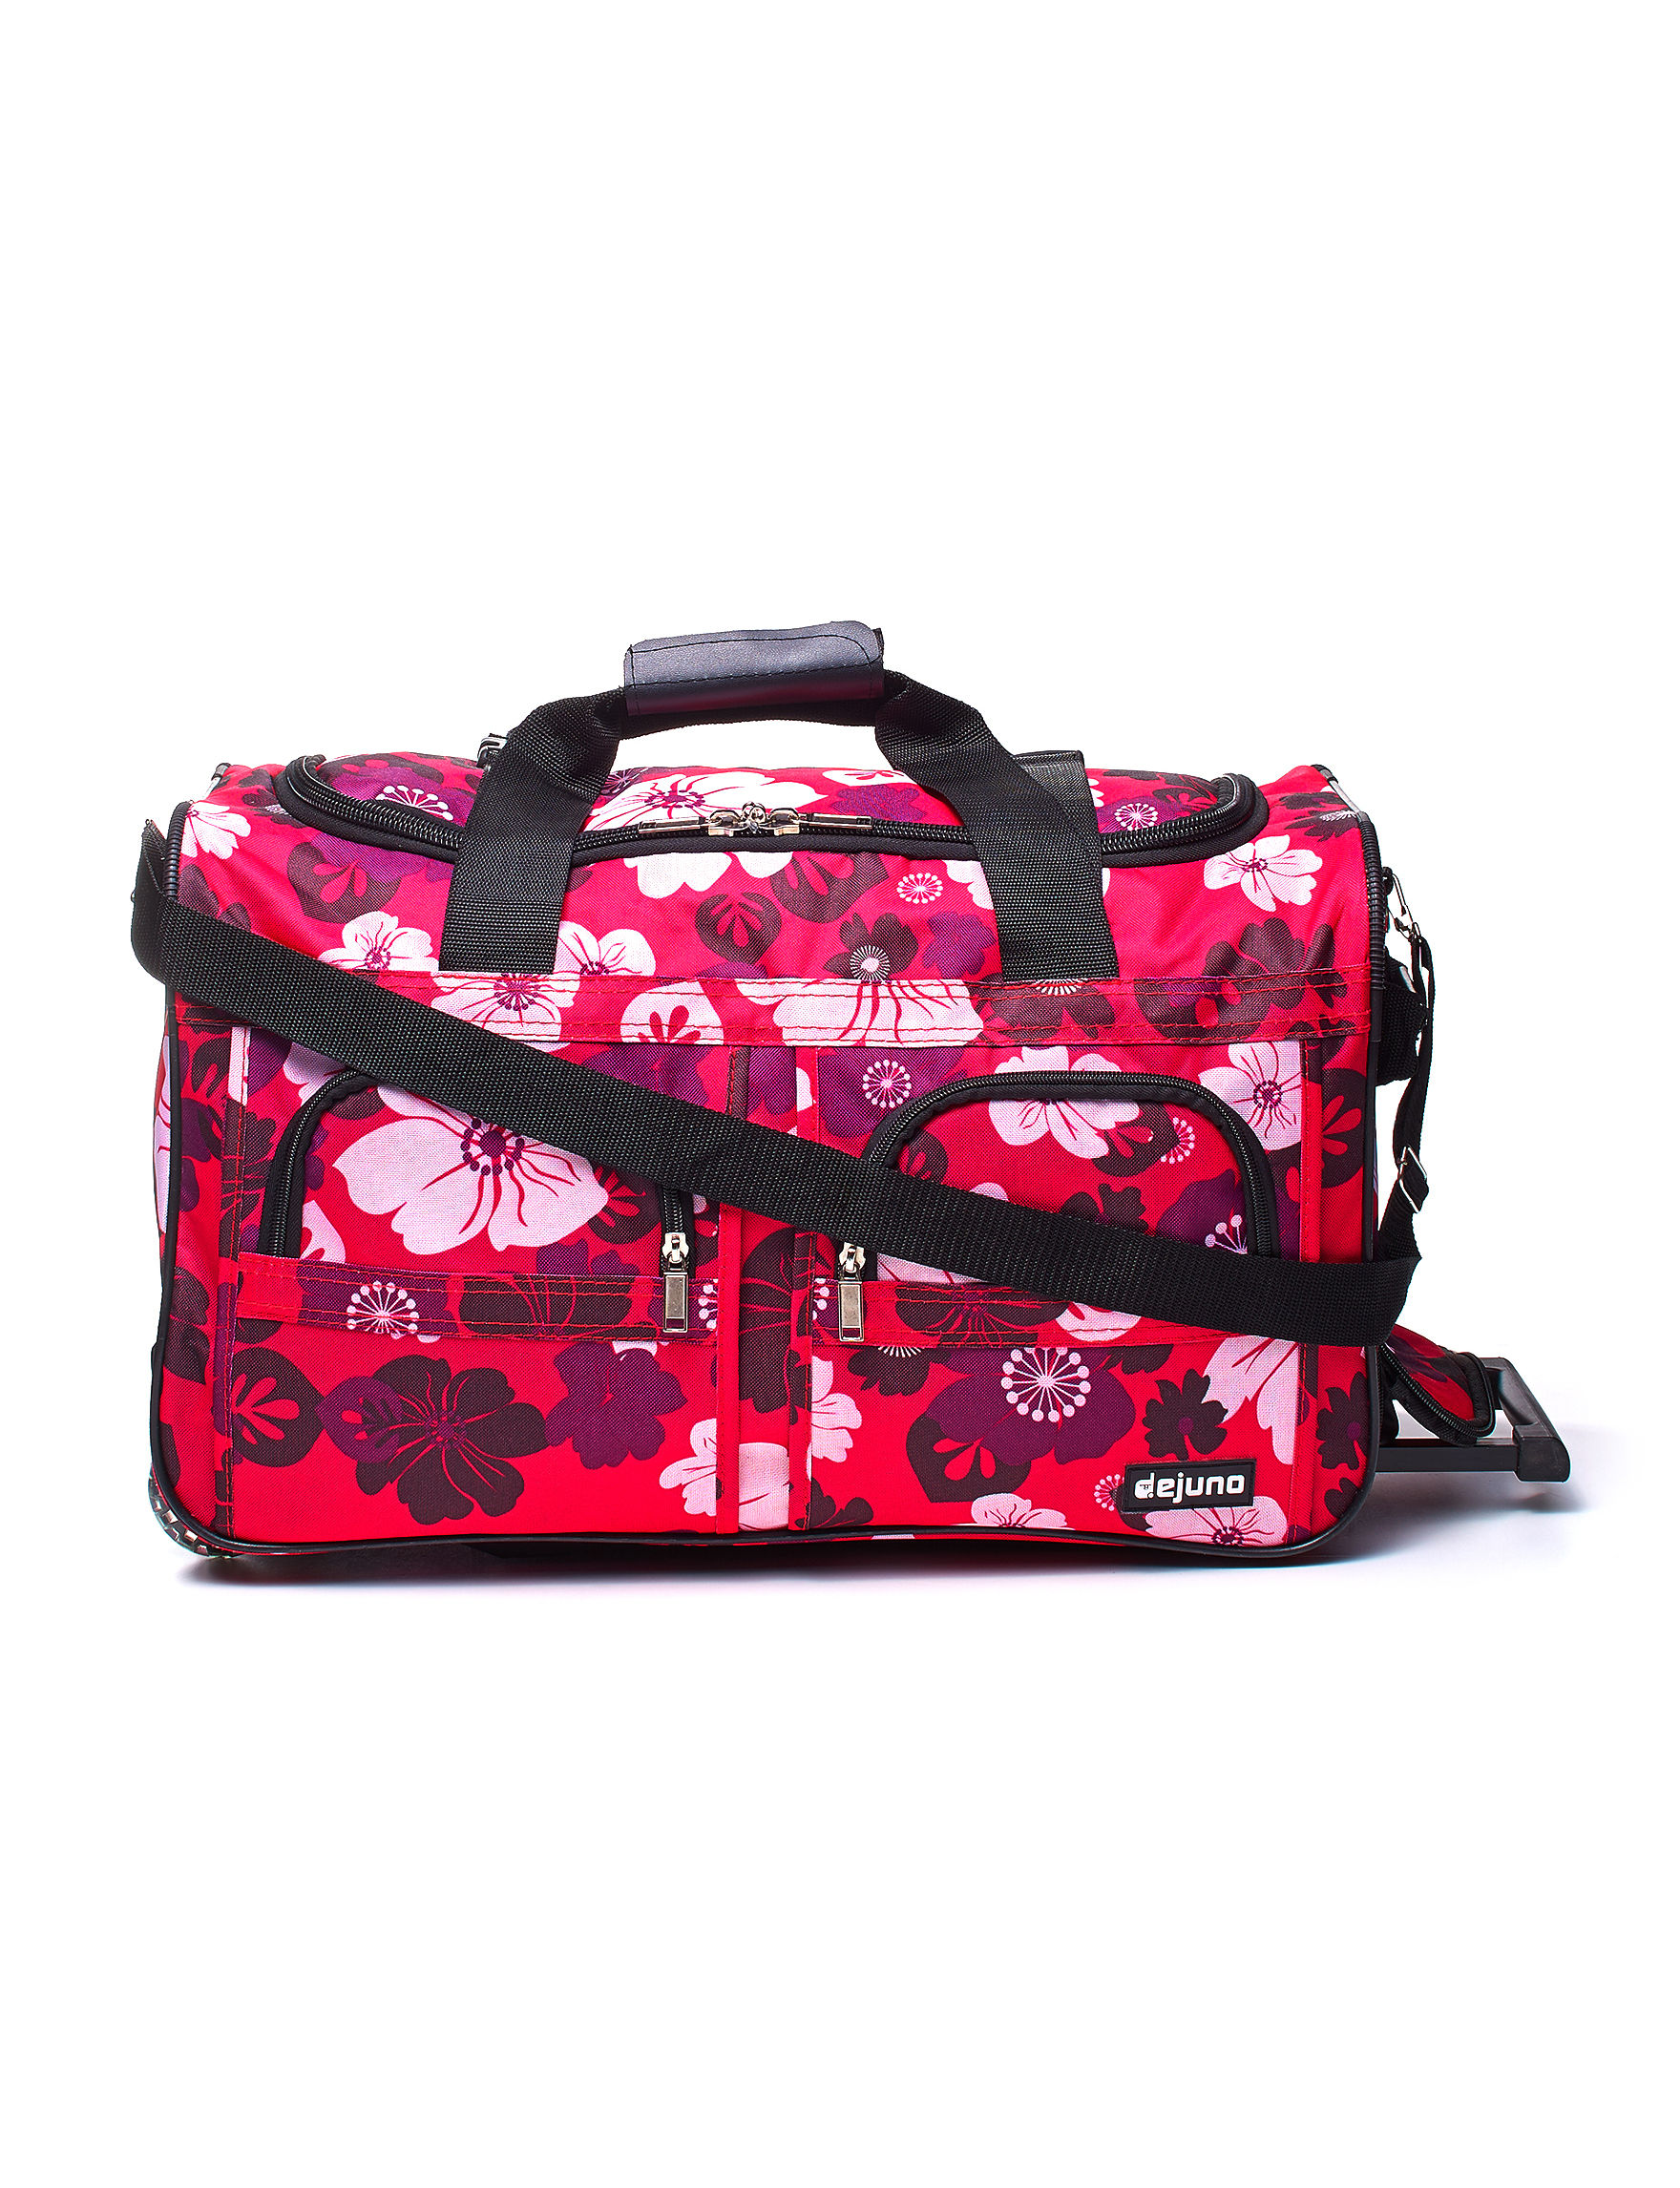 Dejuno Pink Floral Duffle Bags